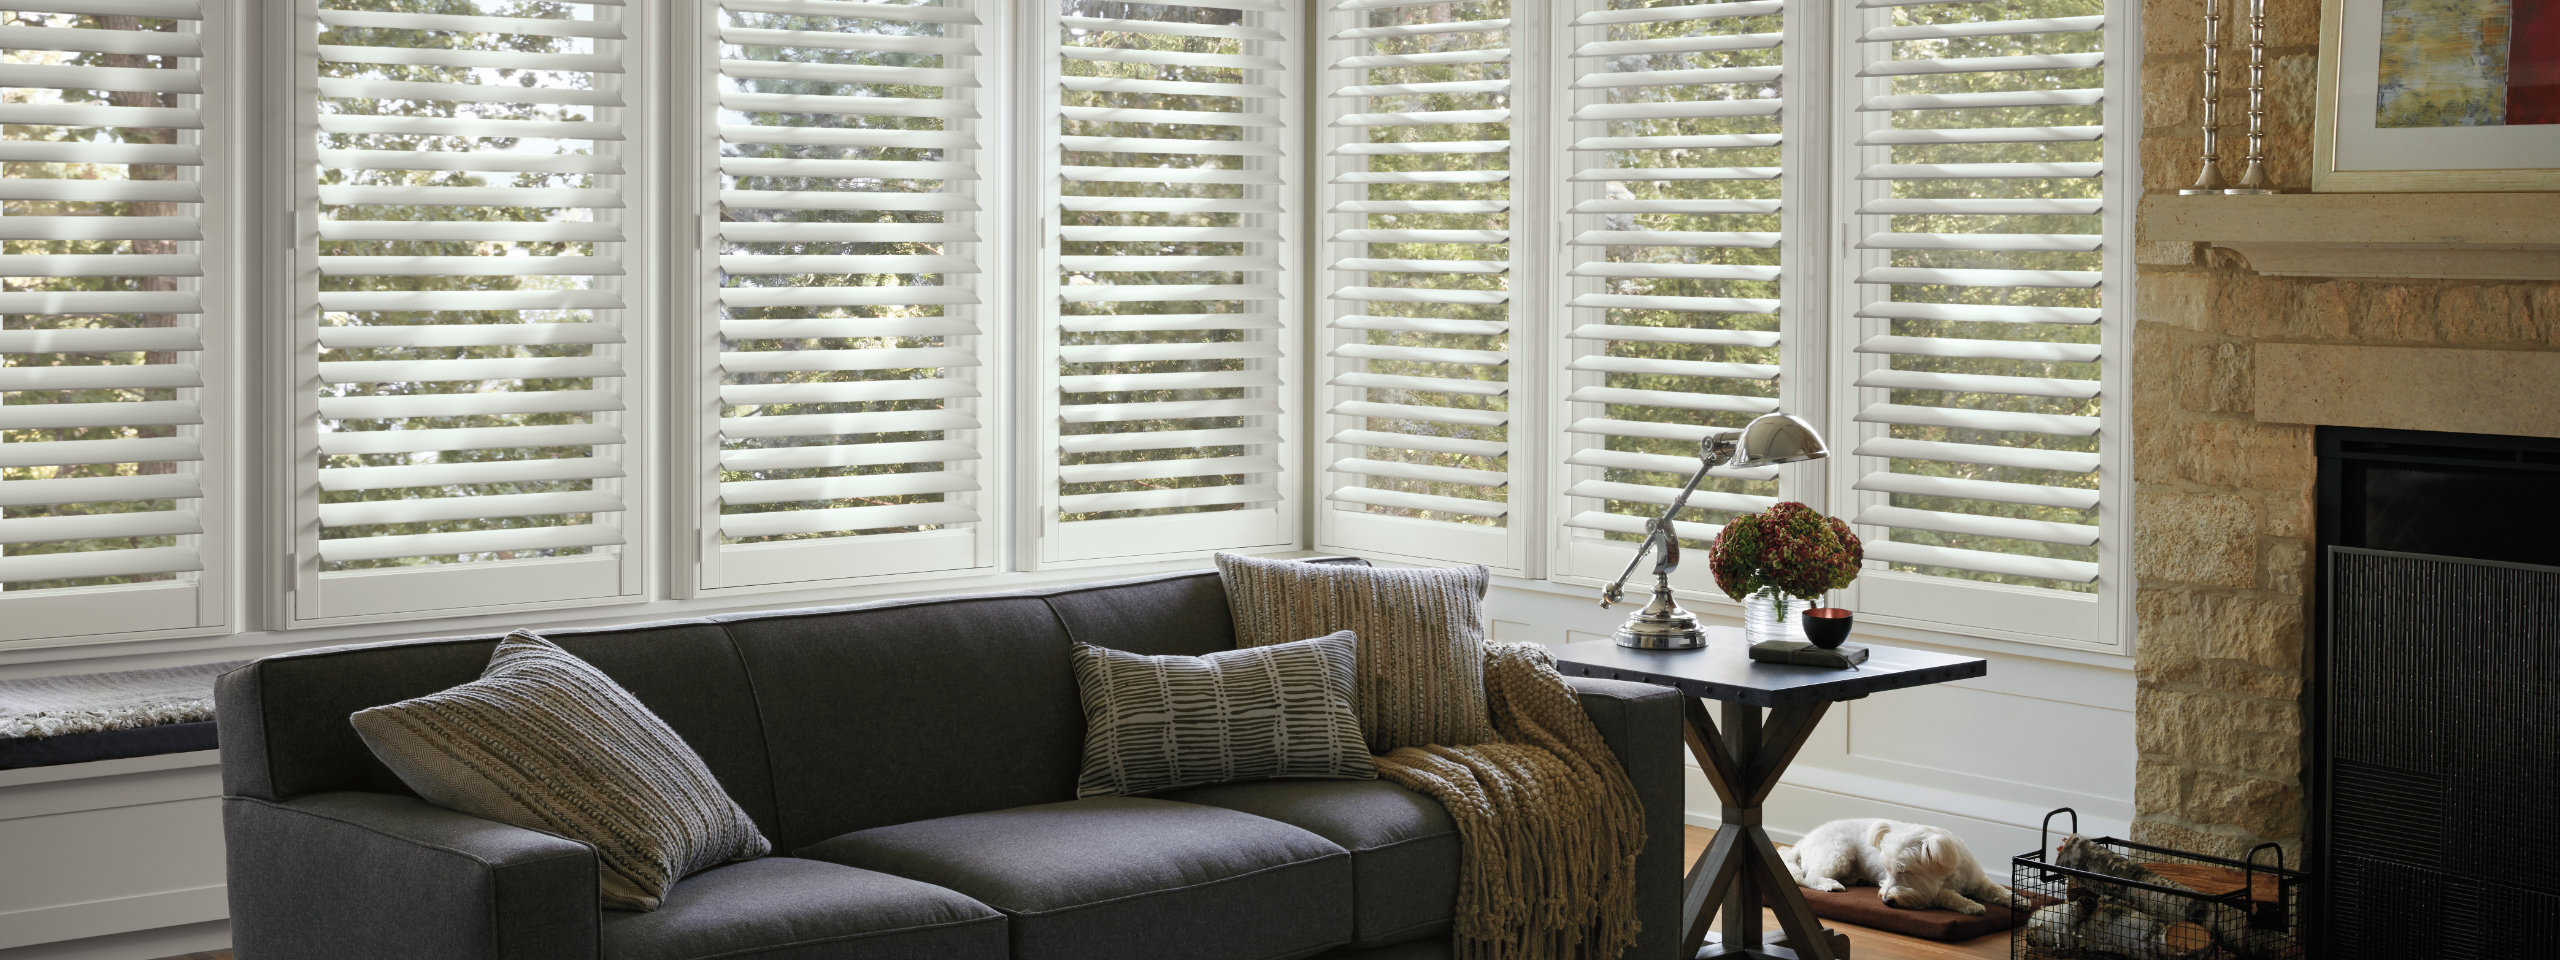 Plantation Shutters in Family Room